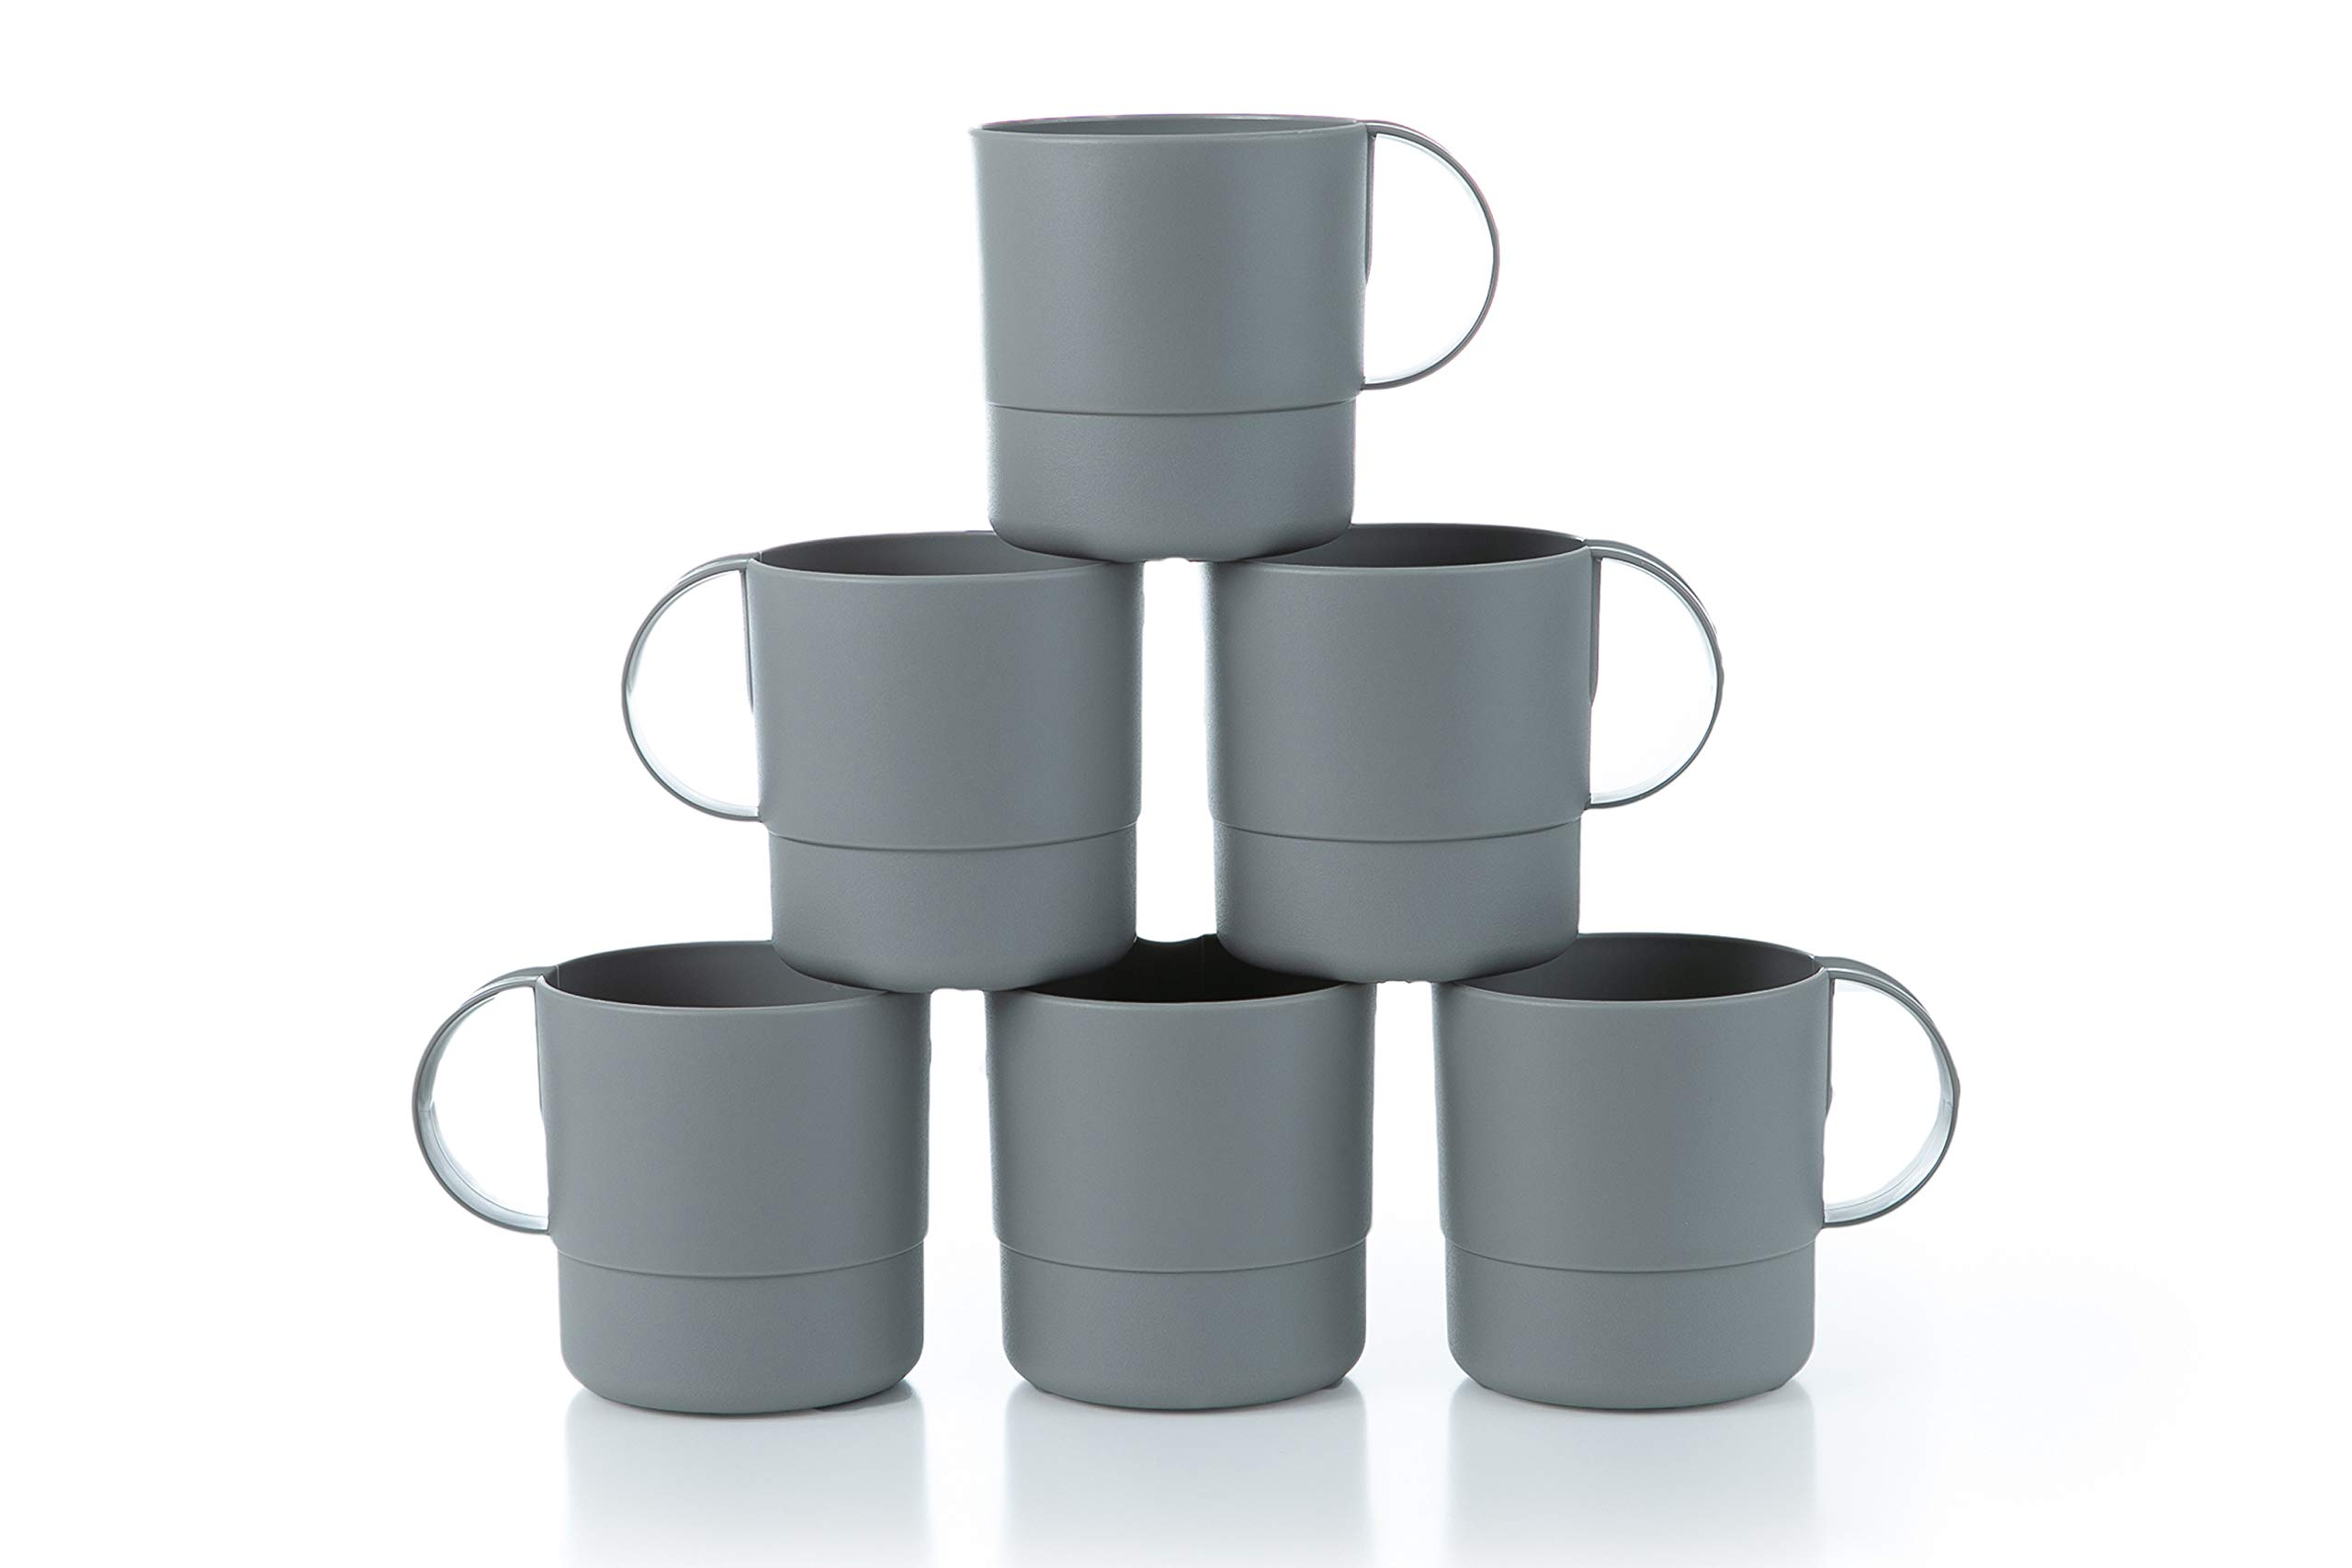 Amuse- Eco Friendly Sturdy Unbreakable & Stackable Mugs for Water, Coffee, Milk, Juice, Tea- Set of 6-11 oz (Gray)